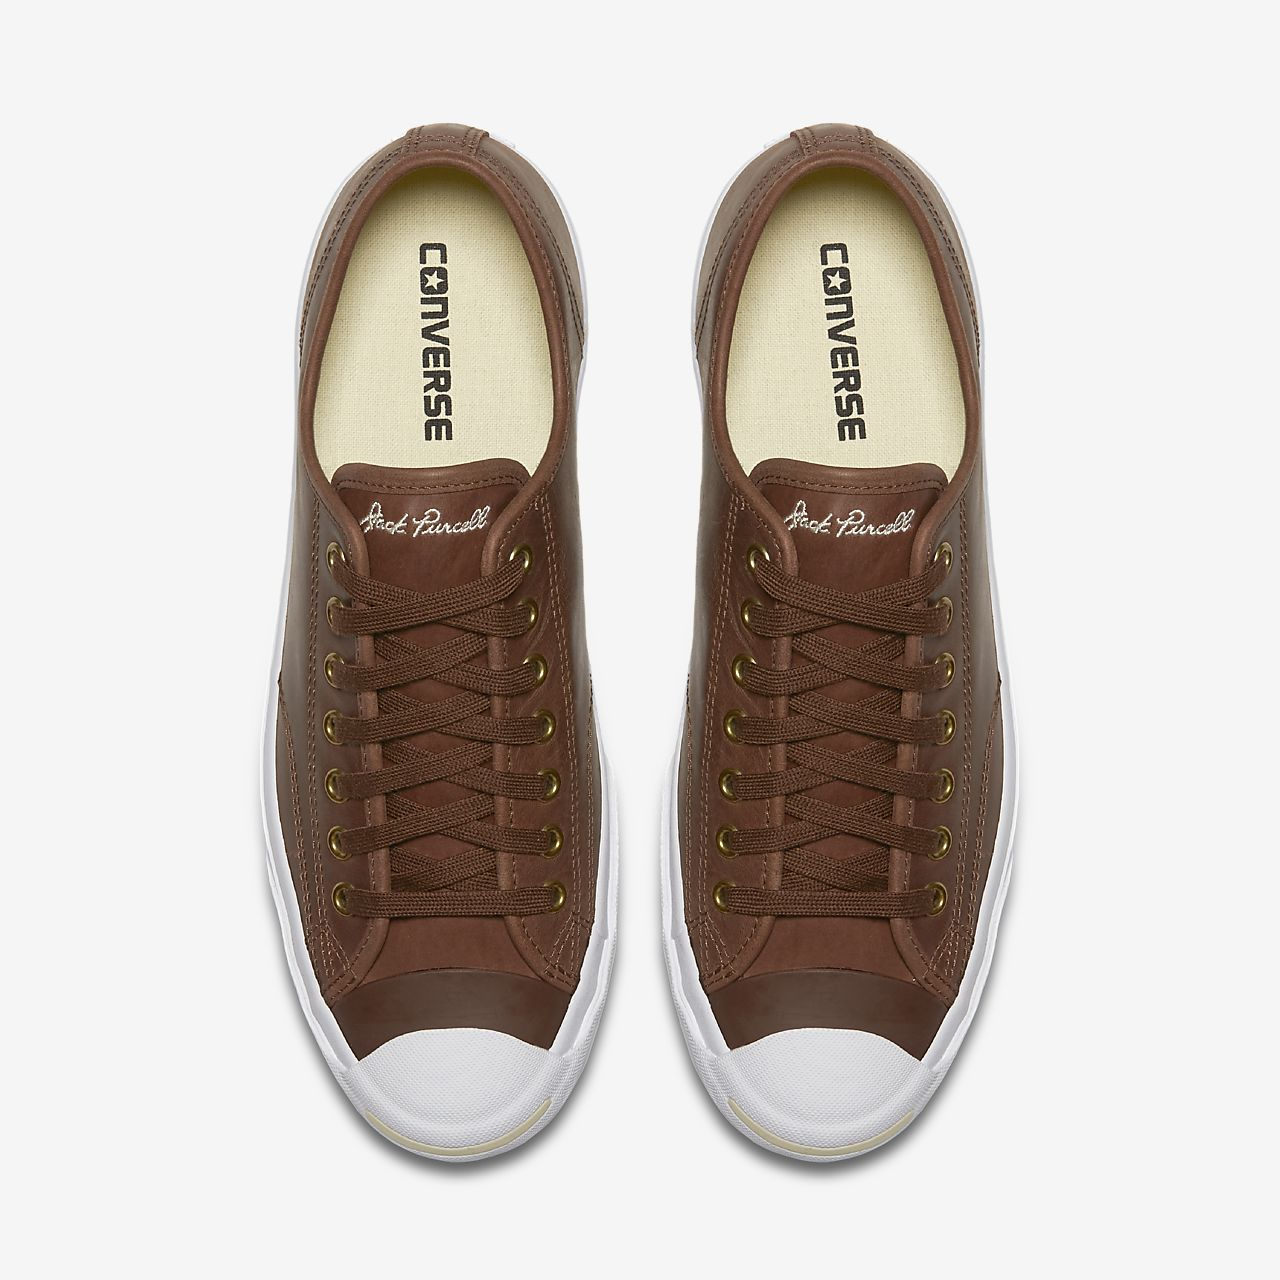 Converse Jack Purcell Boot Leather Low Top Sneakers